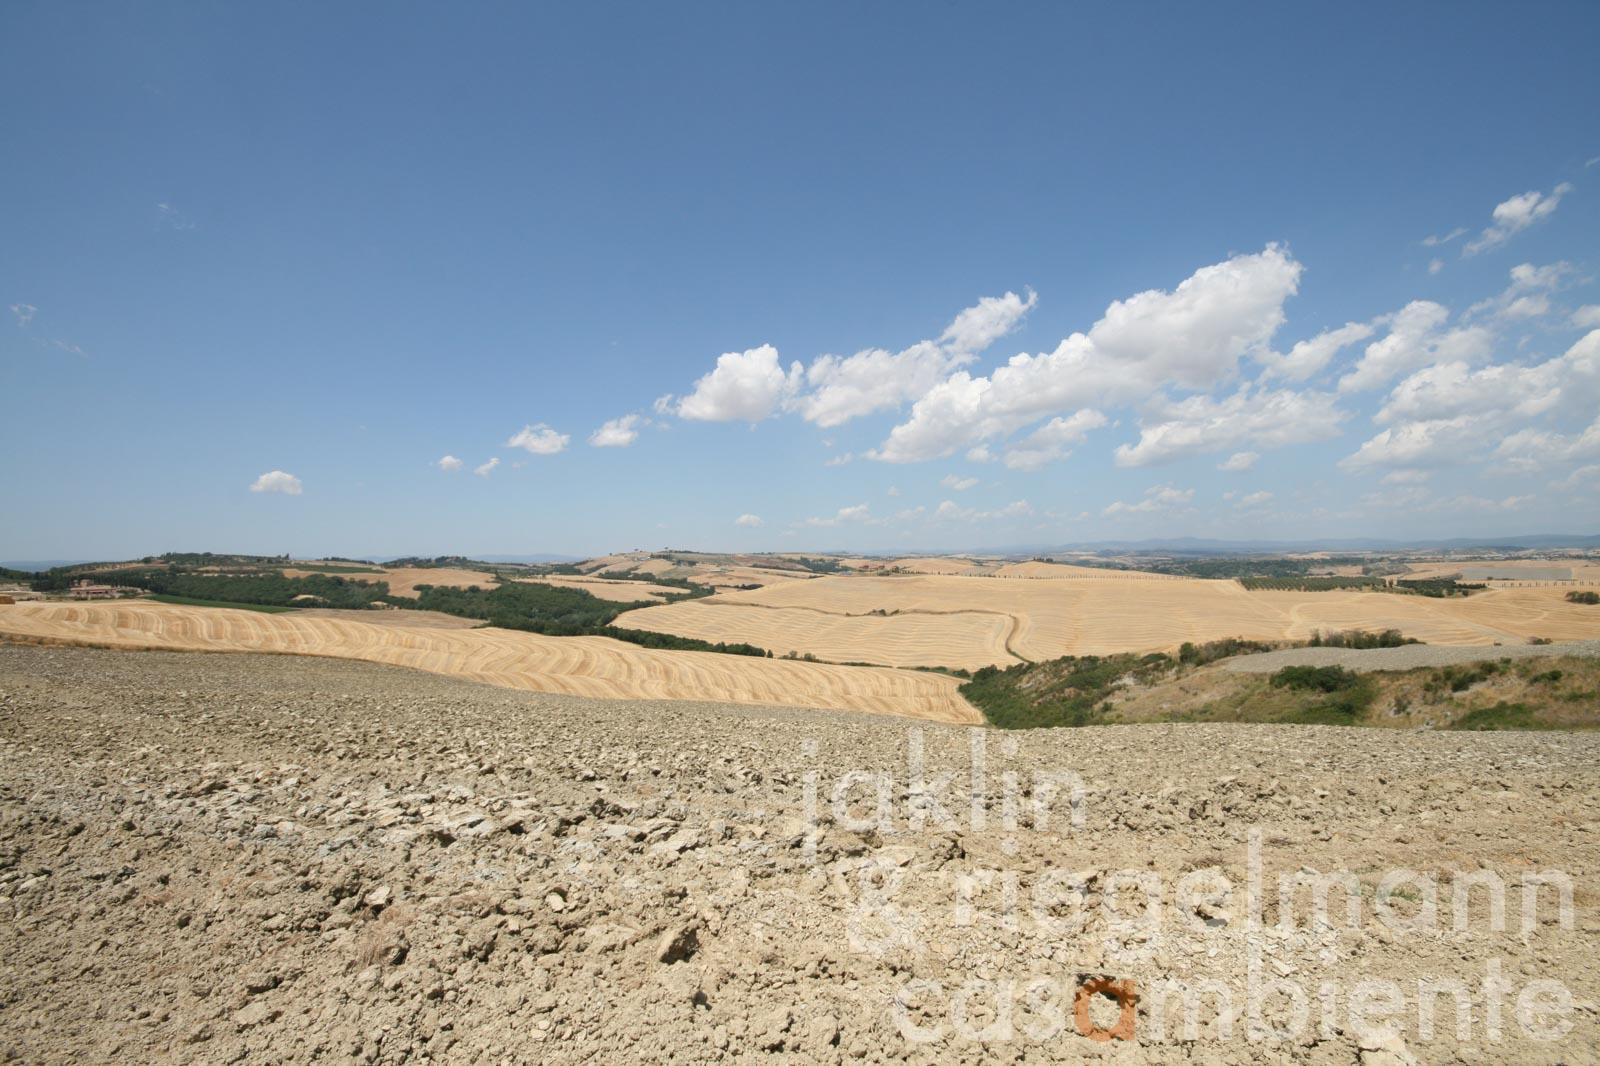 Tuscany, 30 km from Siena, estate with 300 ha of land and 4 farmhouses